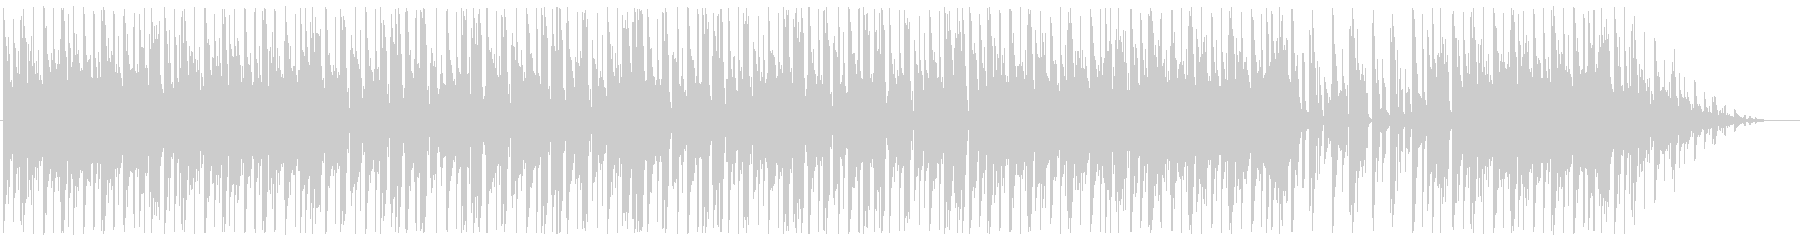 BGM with a calm mood's unreproduced waveform